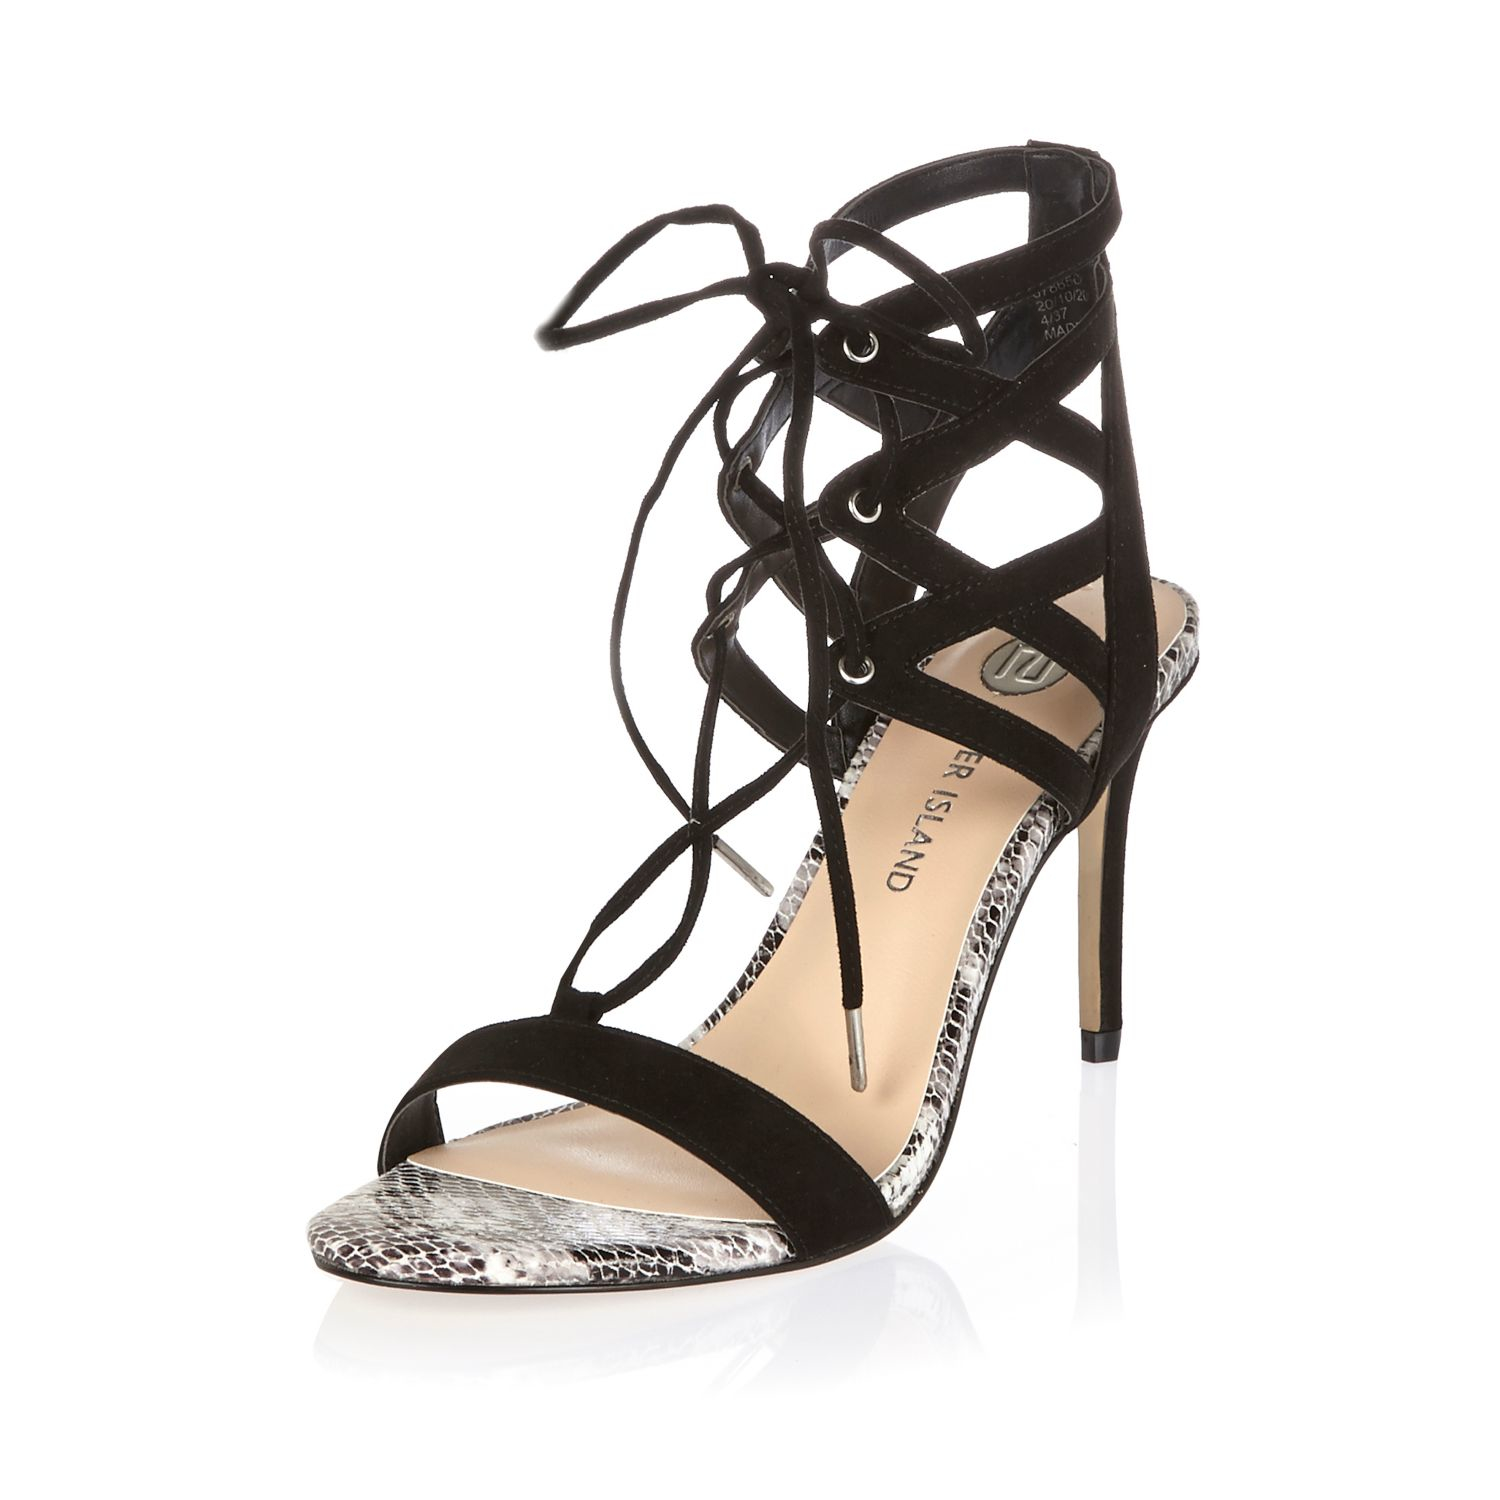 33a130a1728 Lyst - River Island Black Caged Heel Sandals in Black